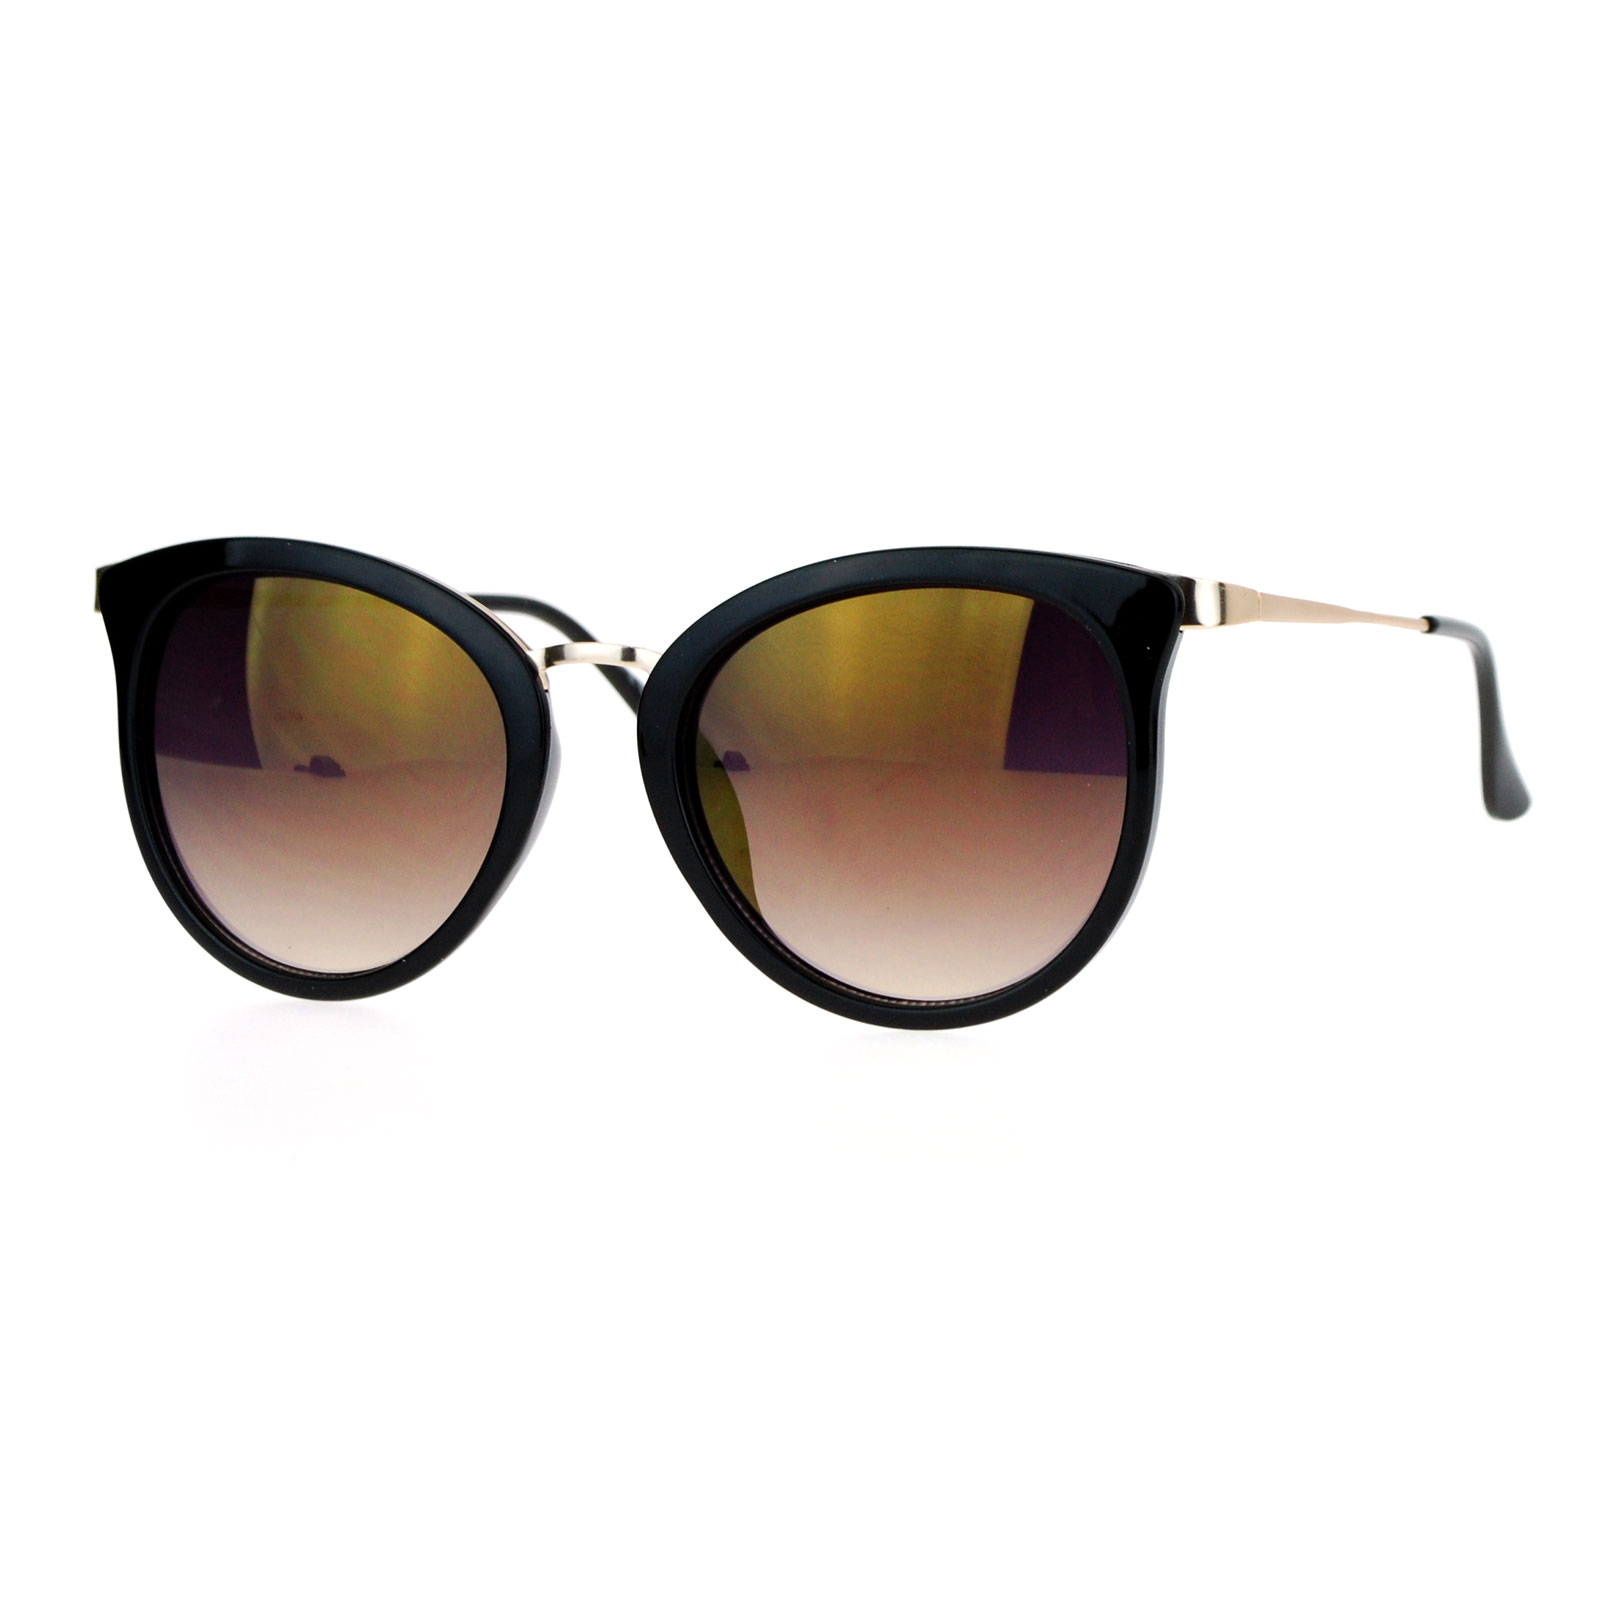 Cat Eye Mirrored Sunglasses  sa106 womens bat shape cat eye color mirror lens sunglasses ebay